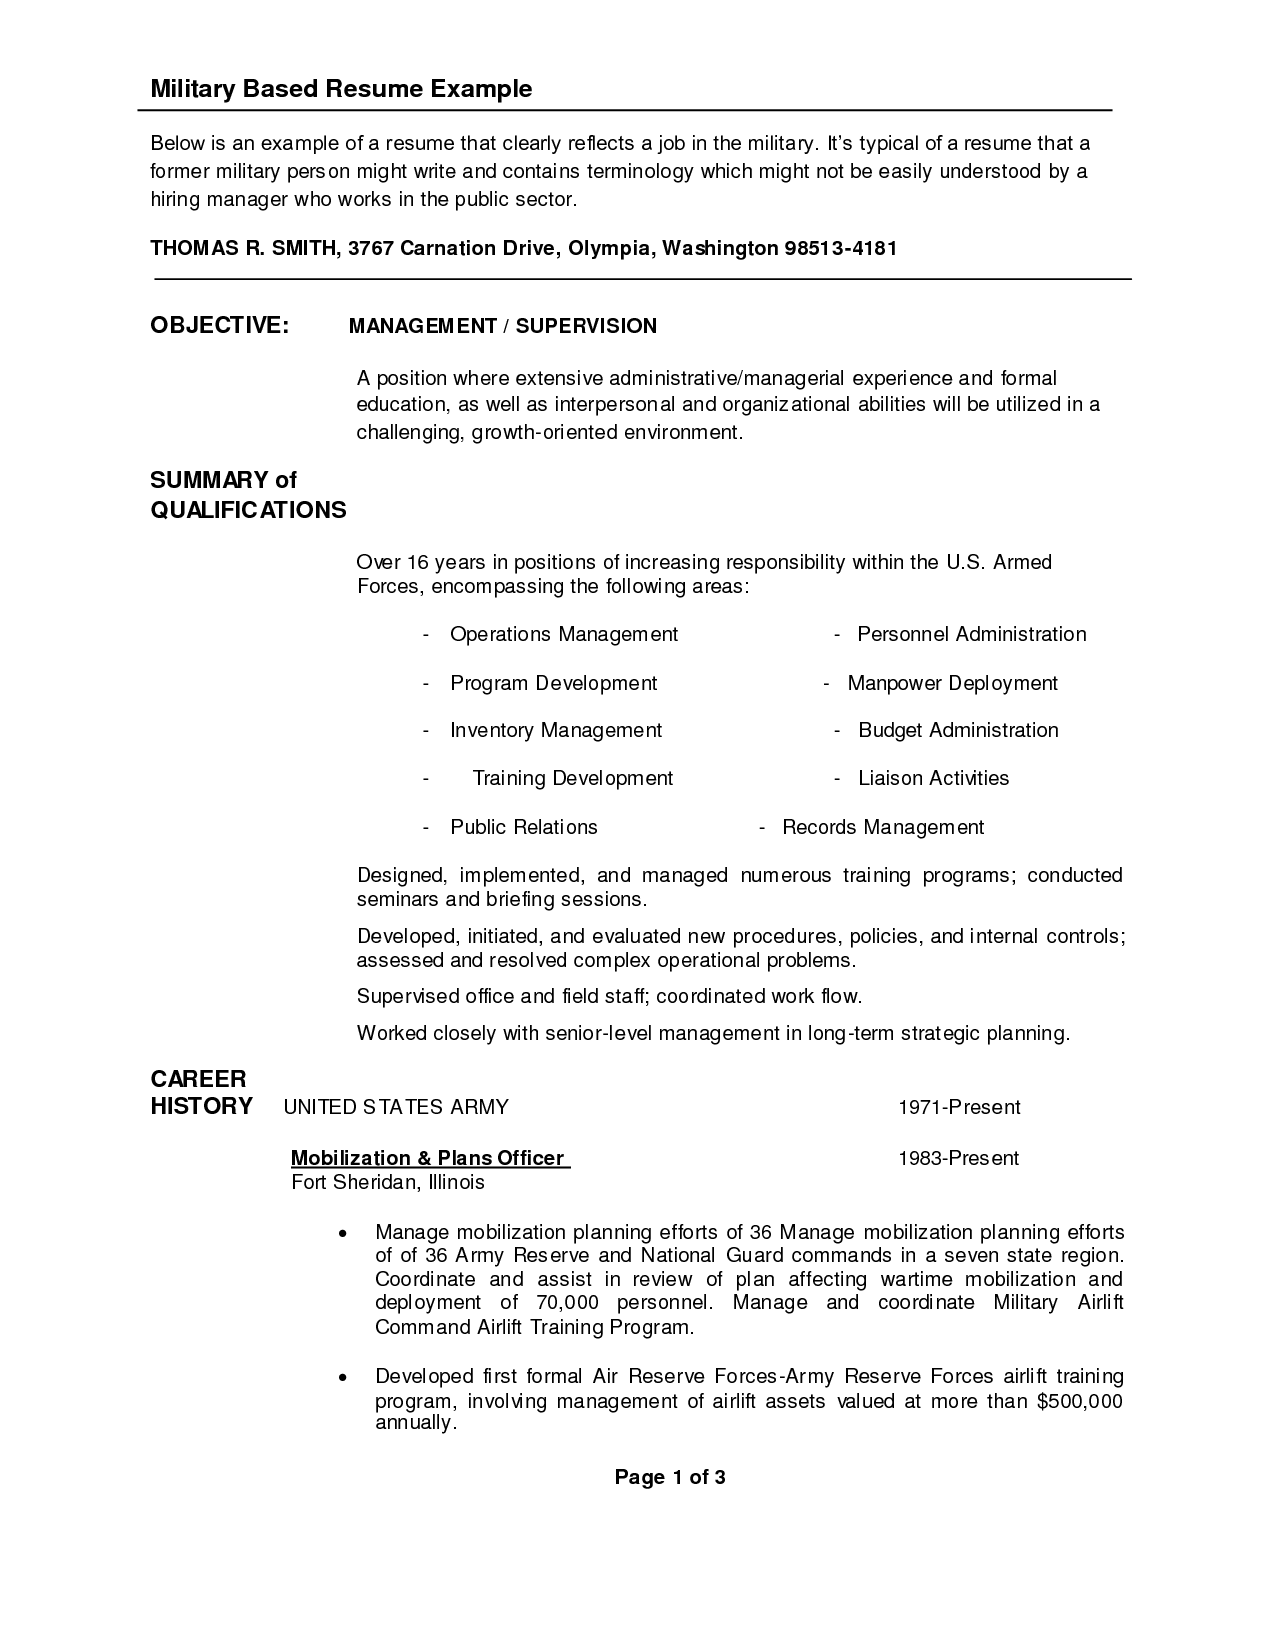 security supervisor resume resume sample format construction security supervisor resume resume sample. Resume Example. Resume CV Cover Letter